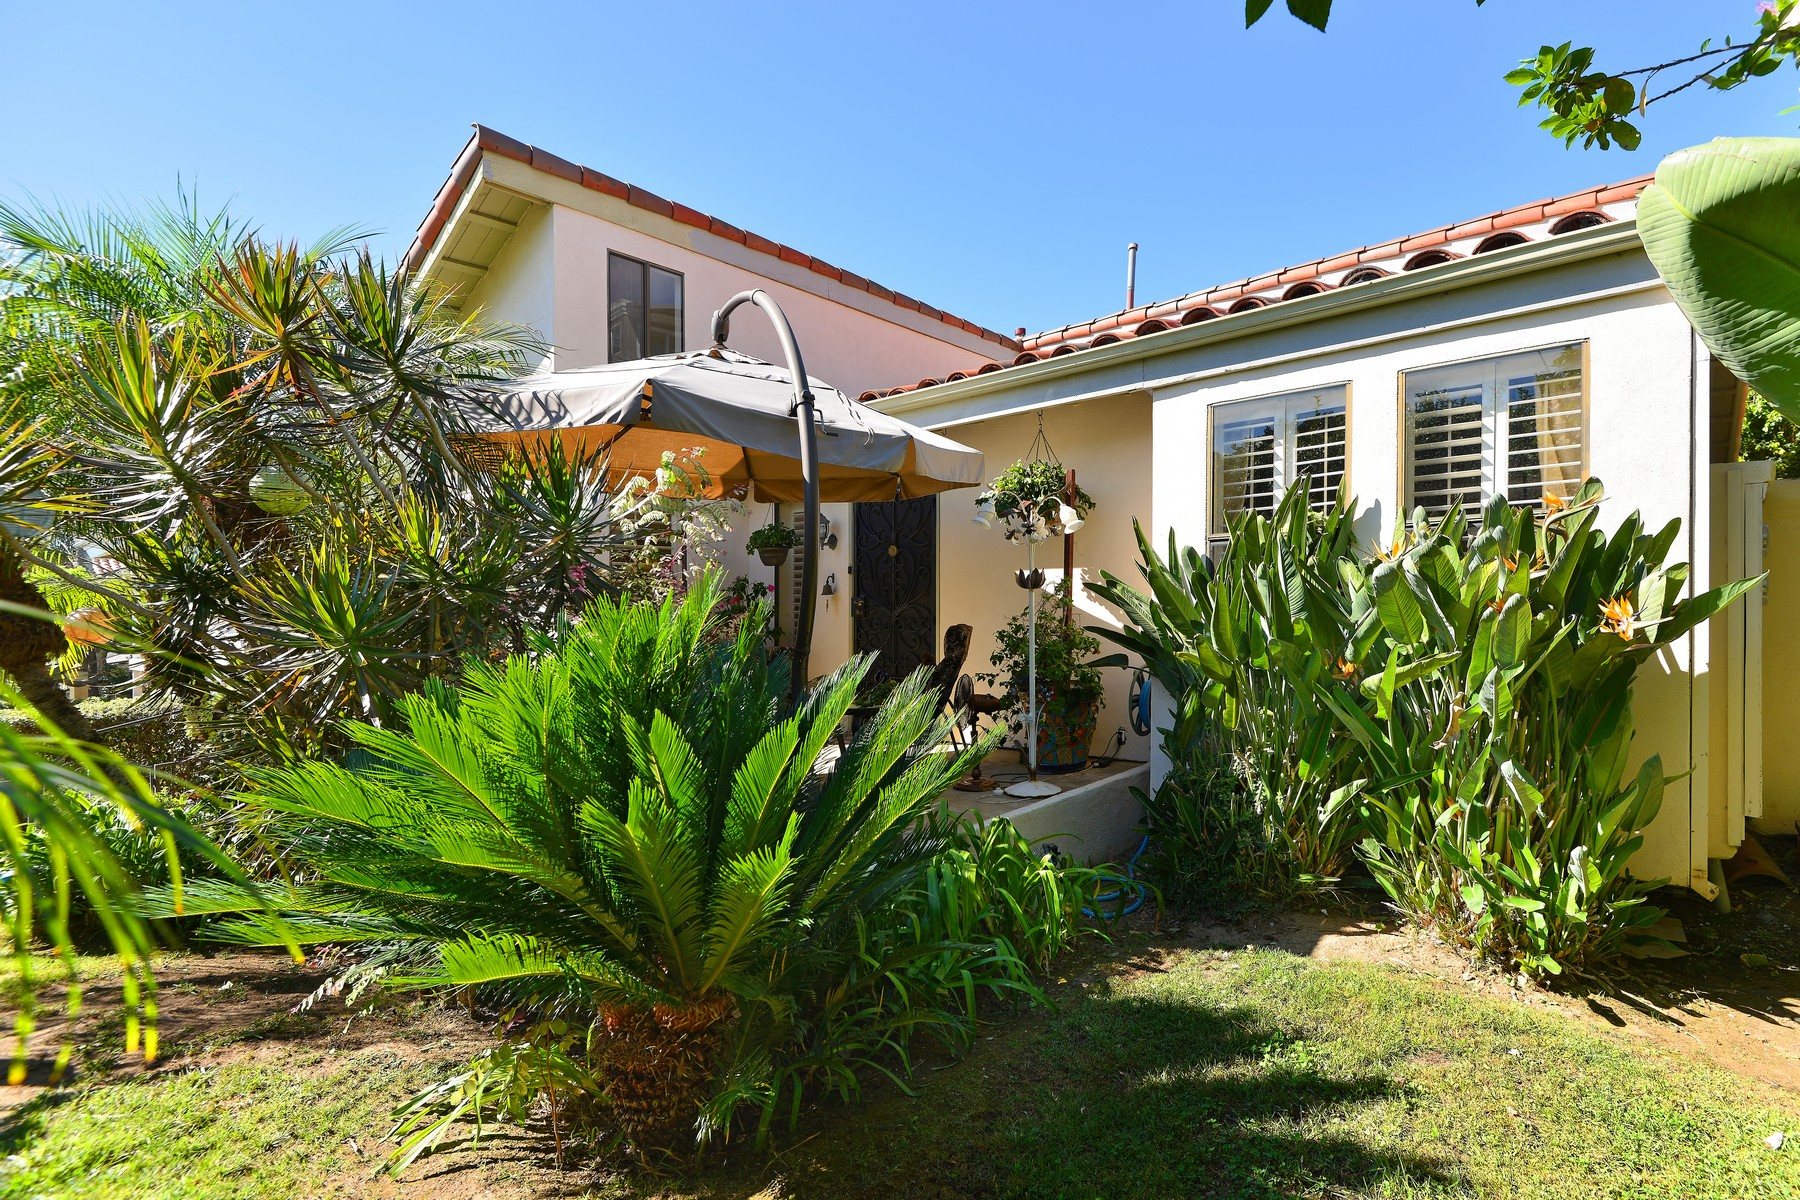 Additional photo for property listing at 634 Arenas Street  La Jolla, California 92037 Estados Unidos